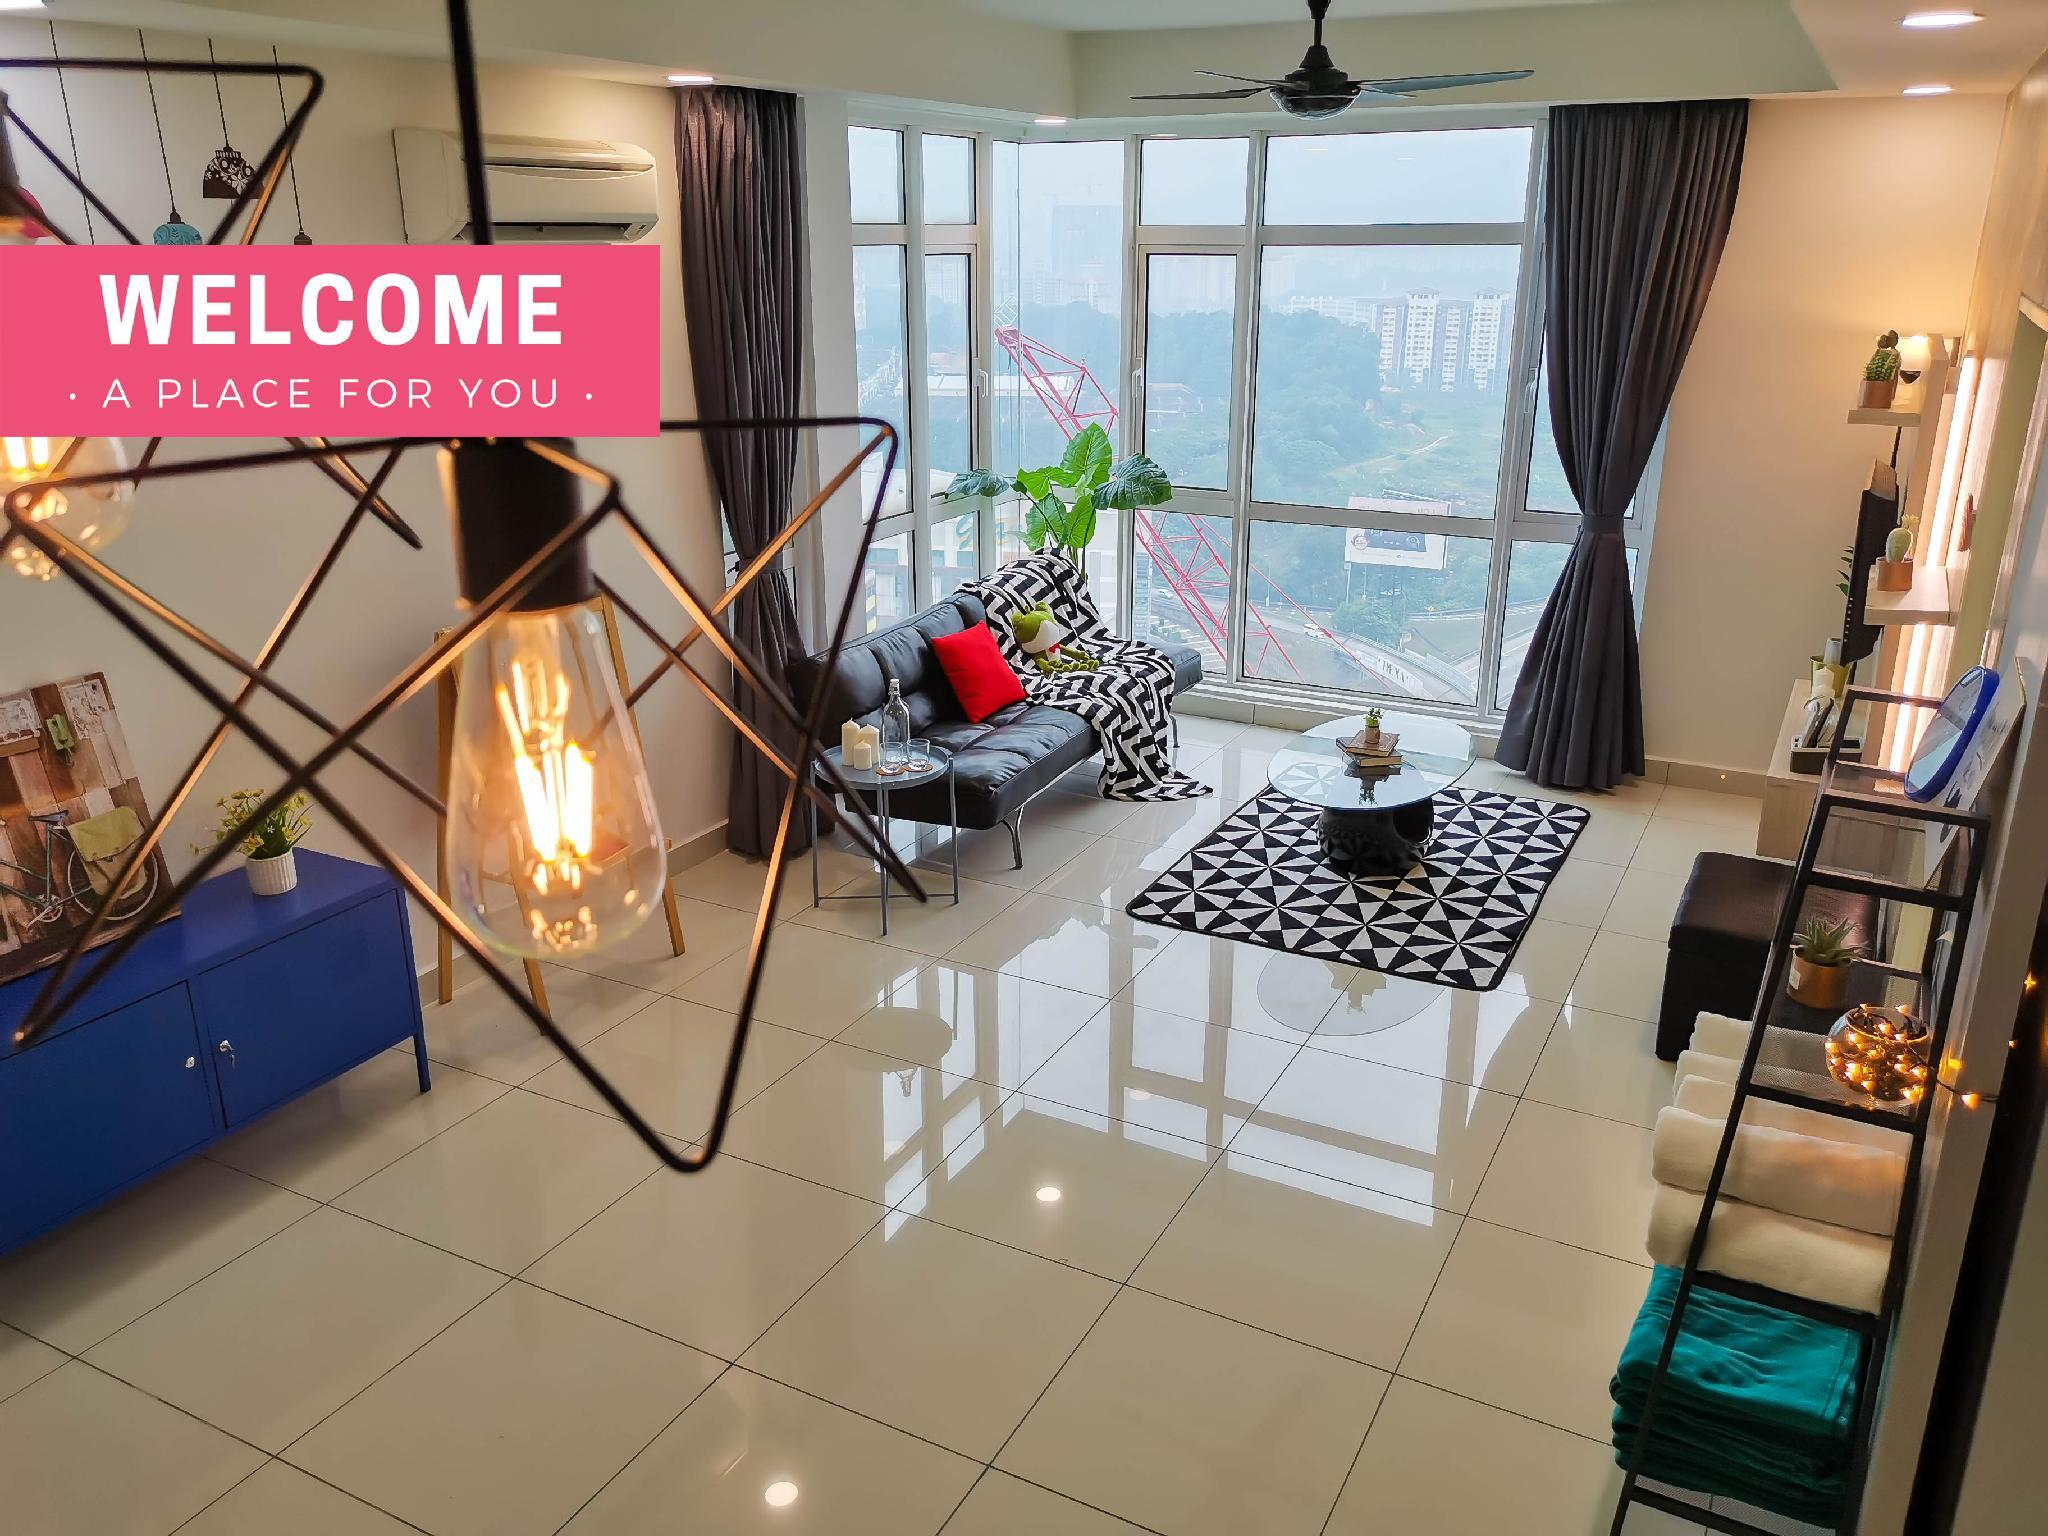 KL Cozy Homestay Nearby Bus Terminal Station  TBS